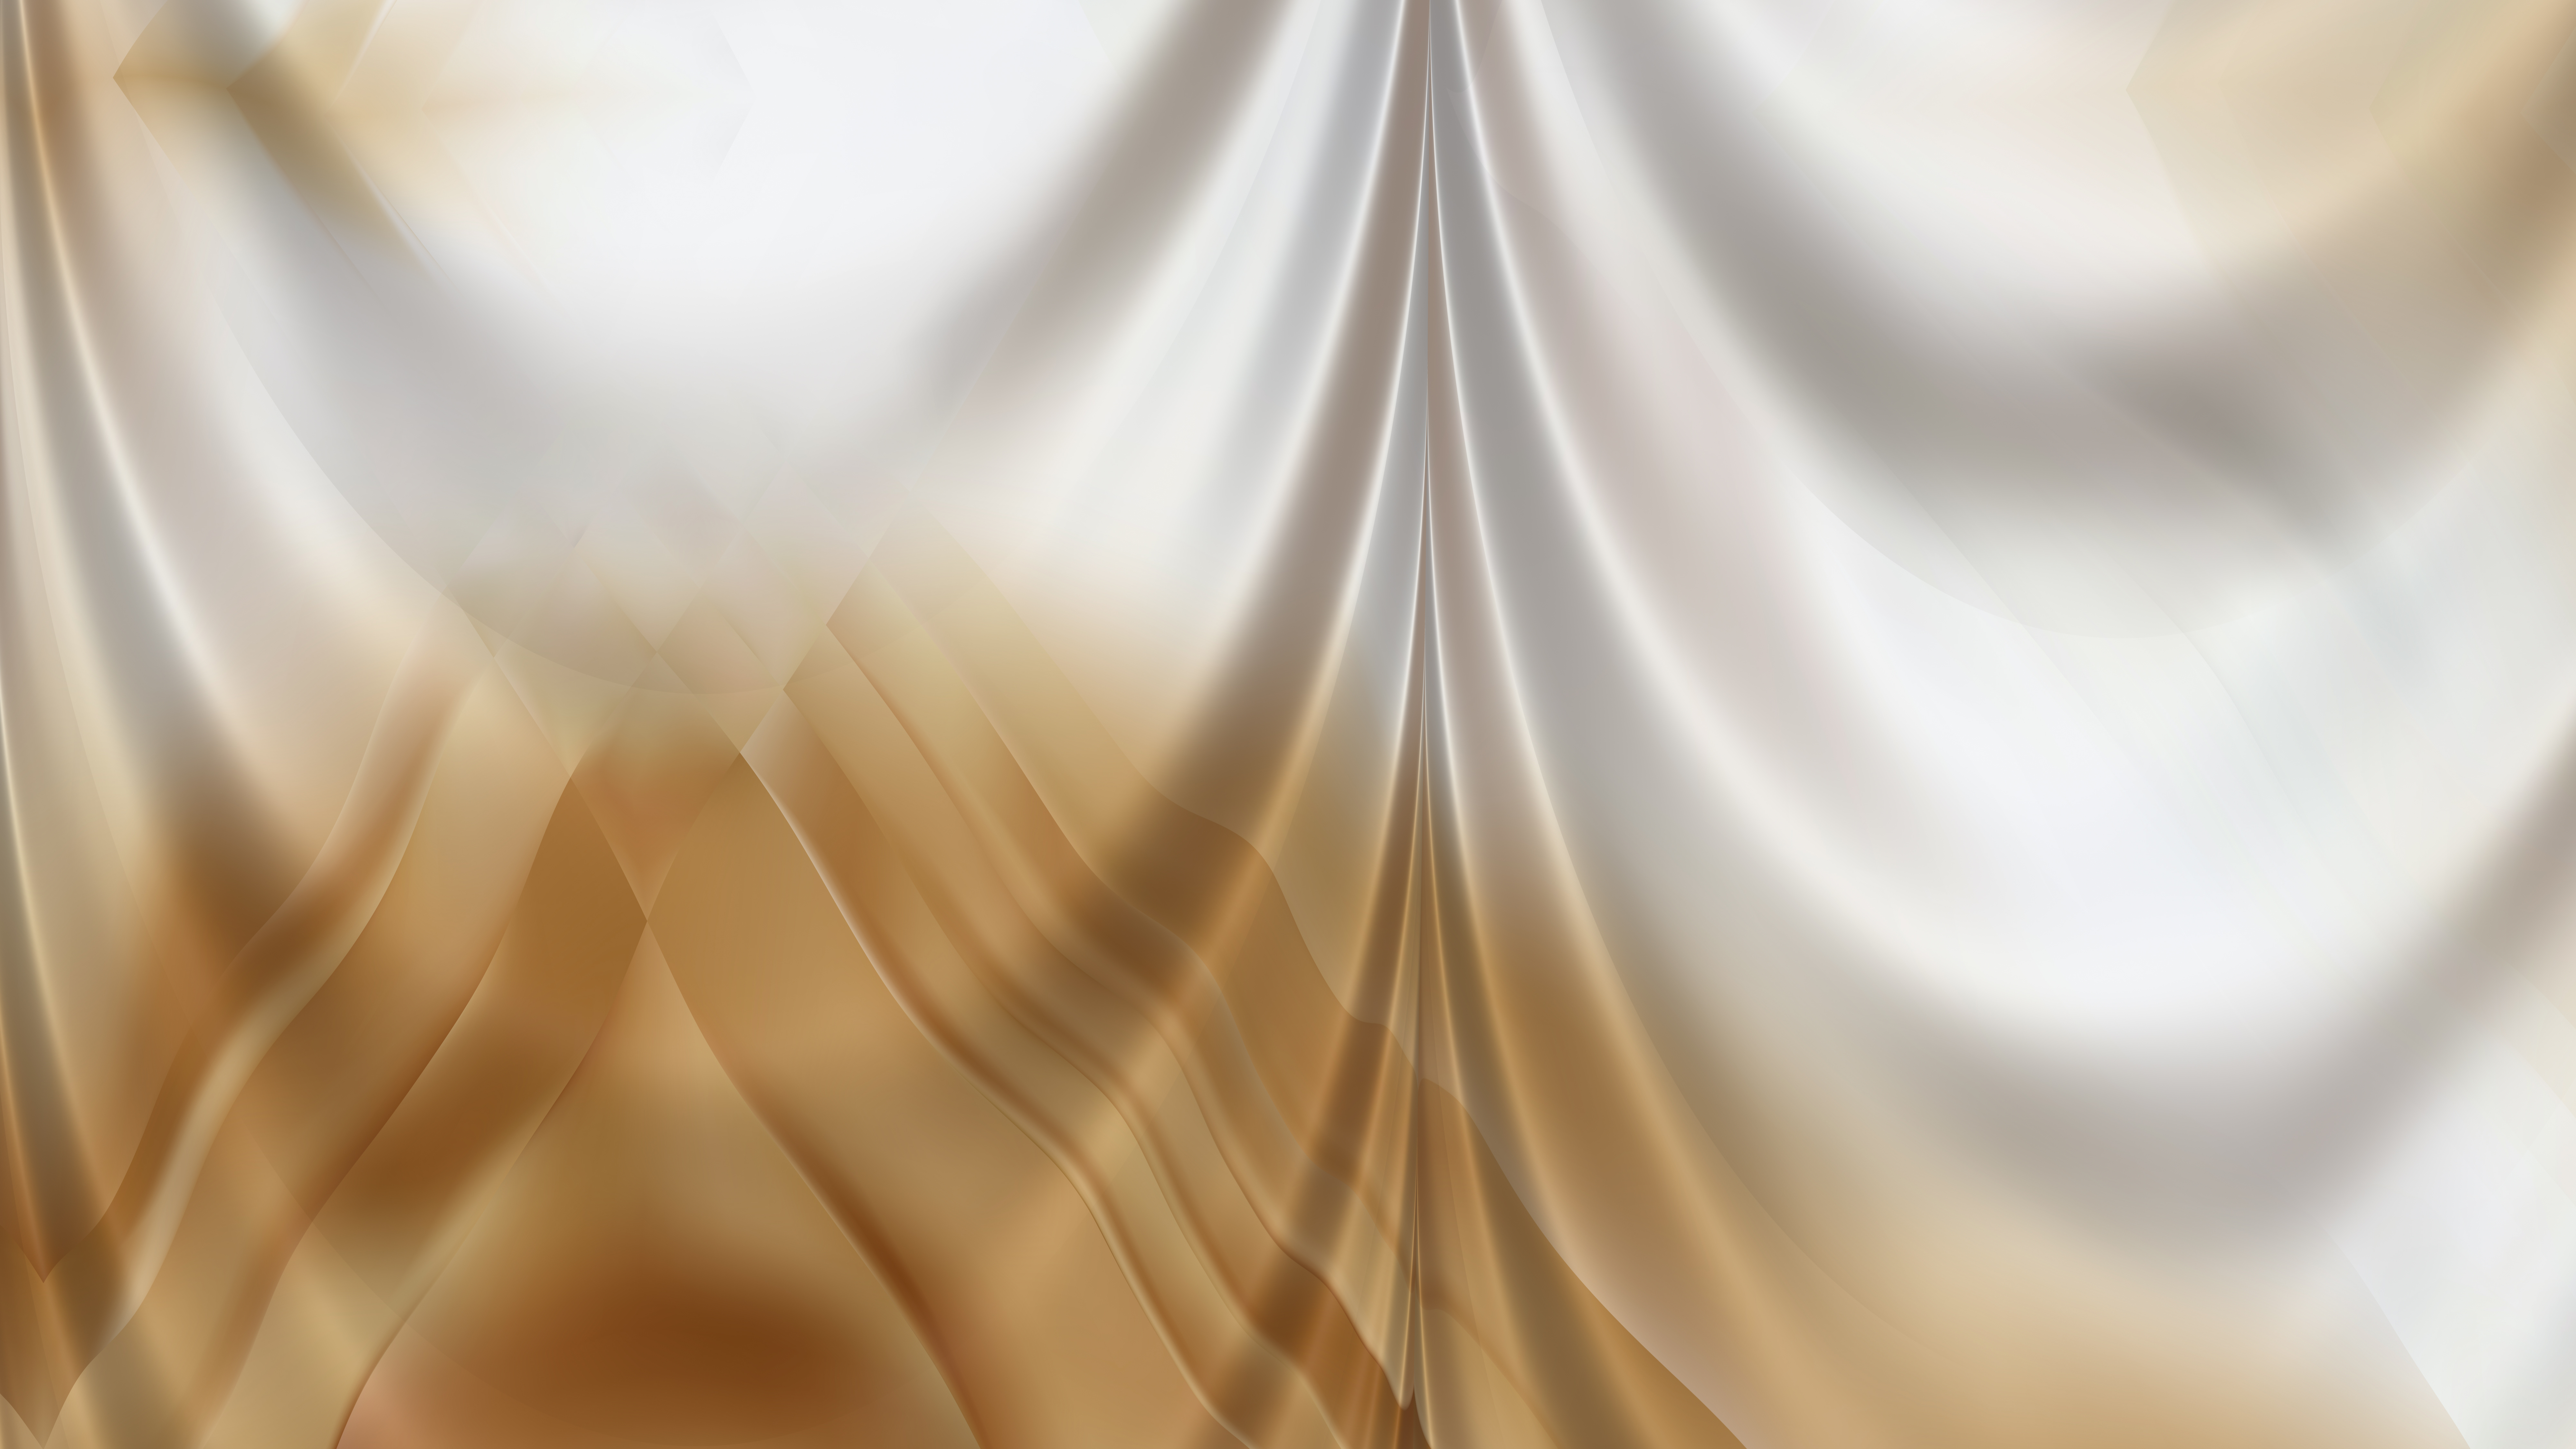 Abstract Brown and White Silk Drapery Textile Background